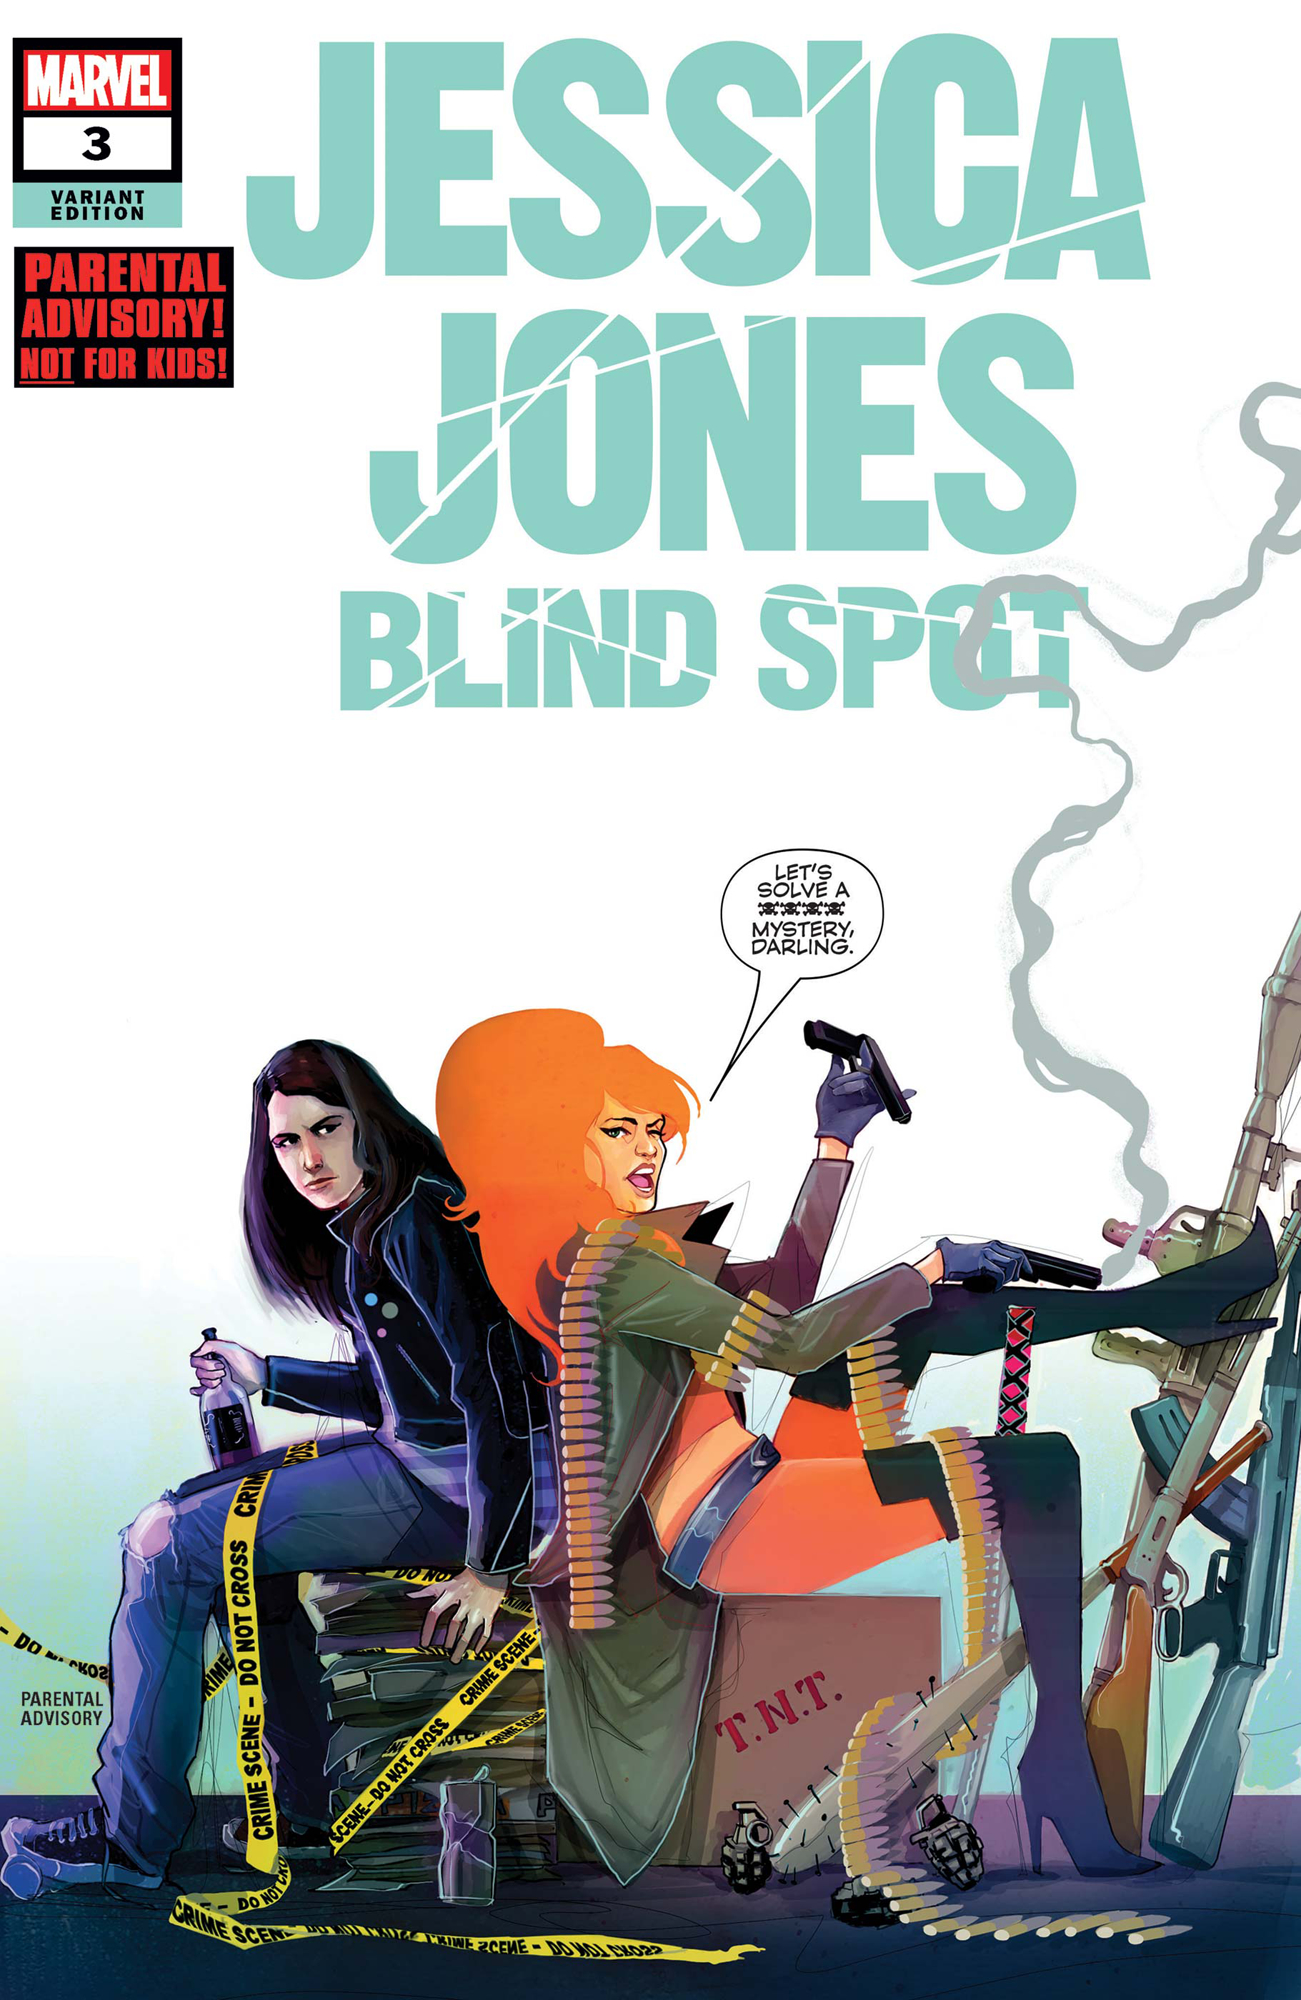 JESSICA JONES BLIND SPOT #3 (OF 6) SIMMONDS VAR